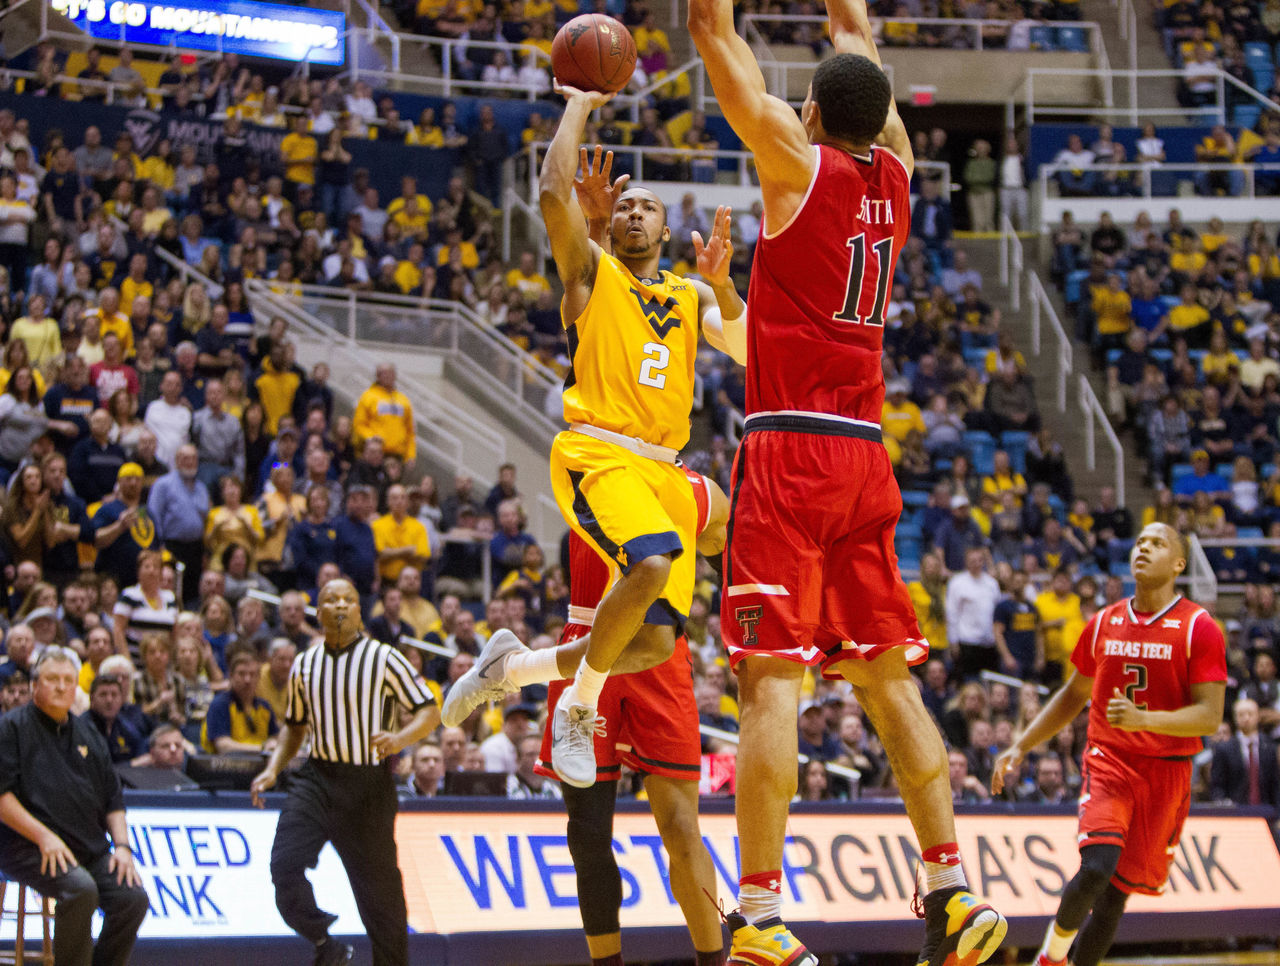 Cropped_2017-02-18t212253z_1033238253_nocid_rtrmadp_3_ncaa-basketball-texas-tech-at-west-virginia